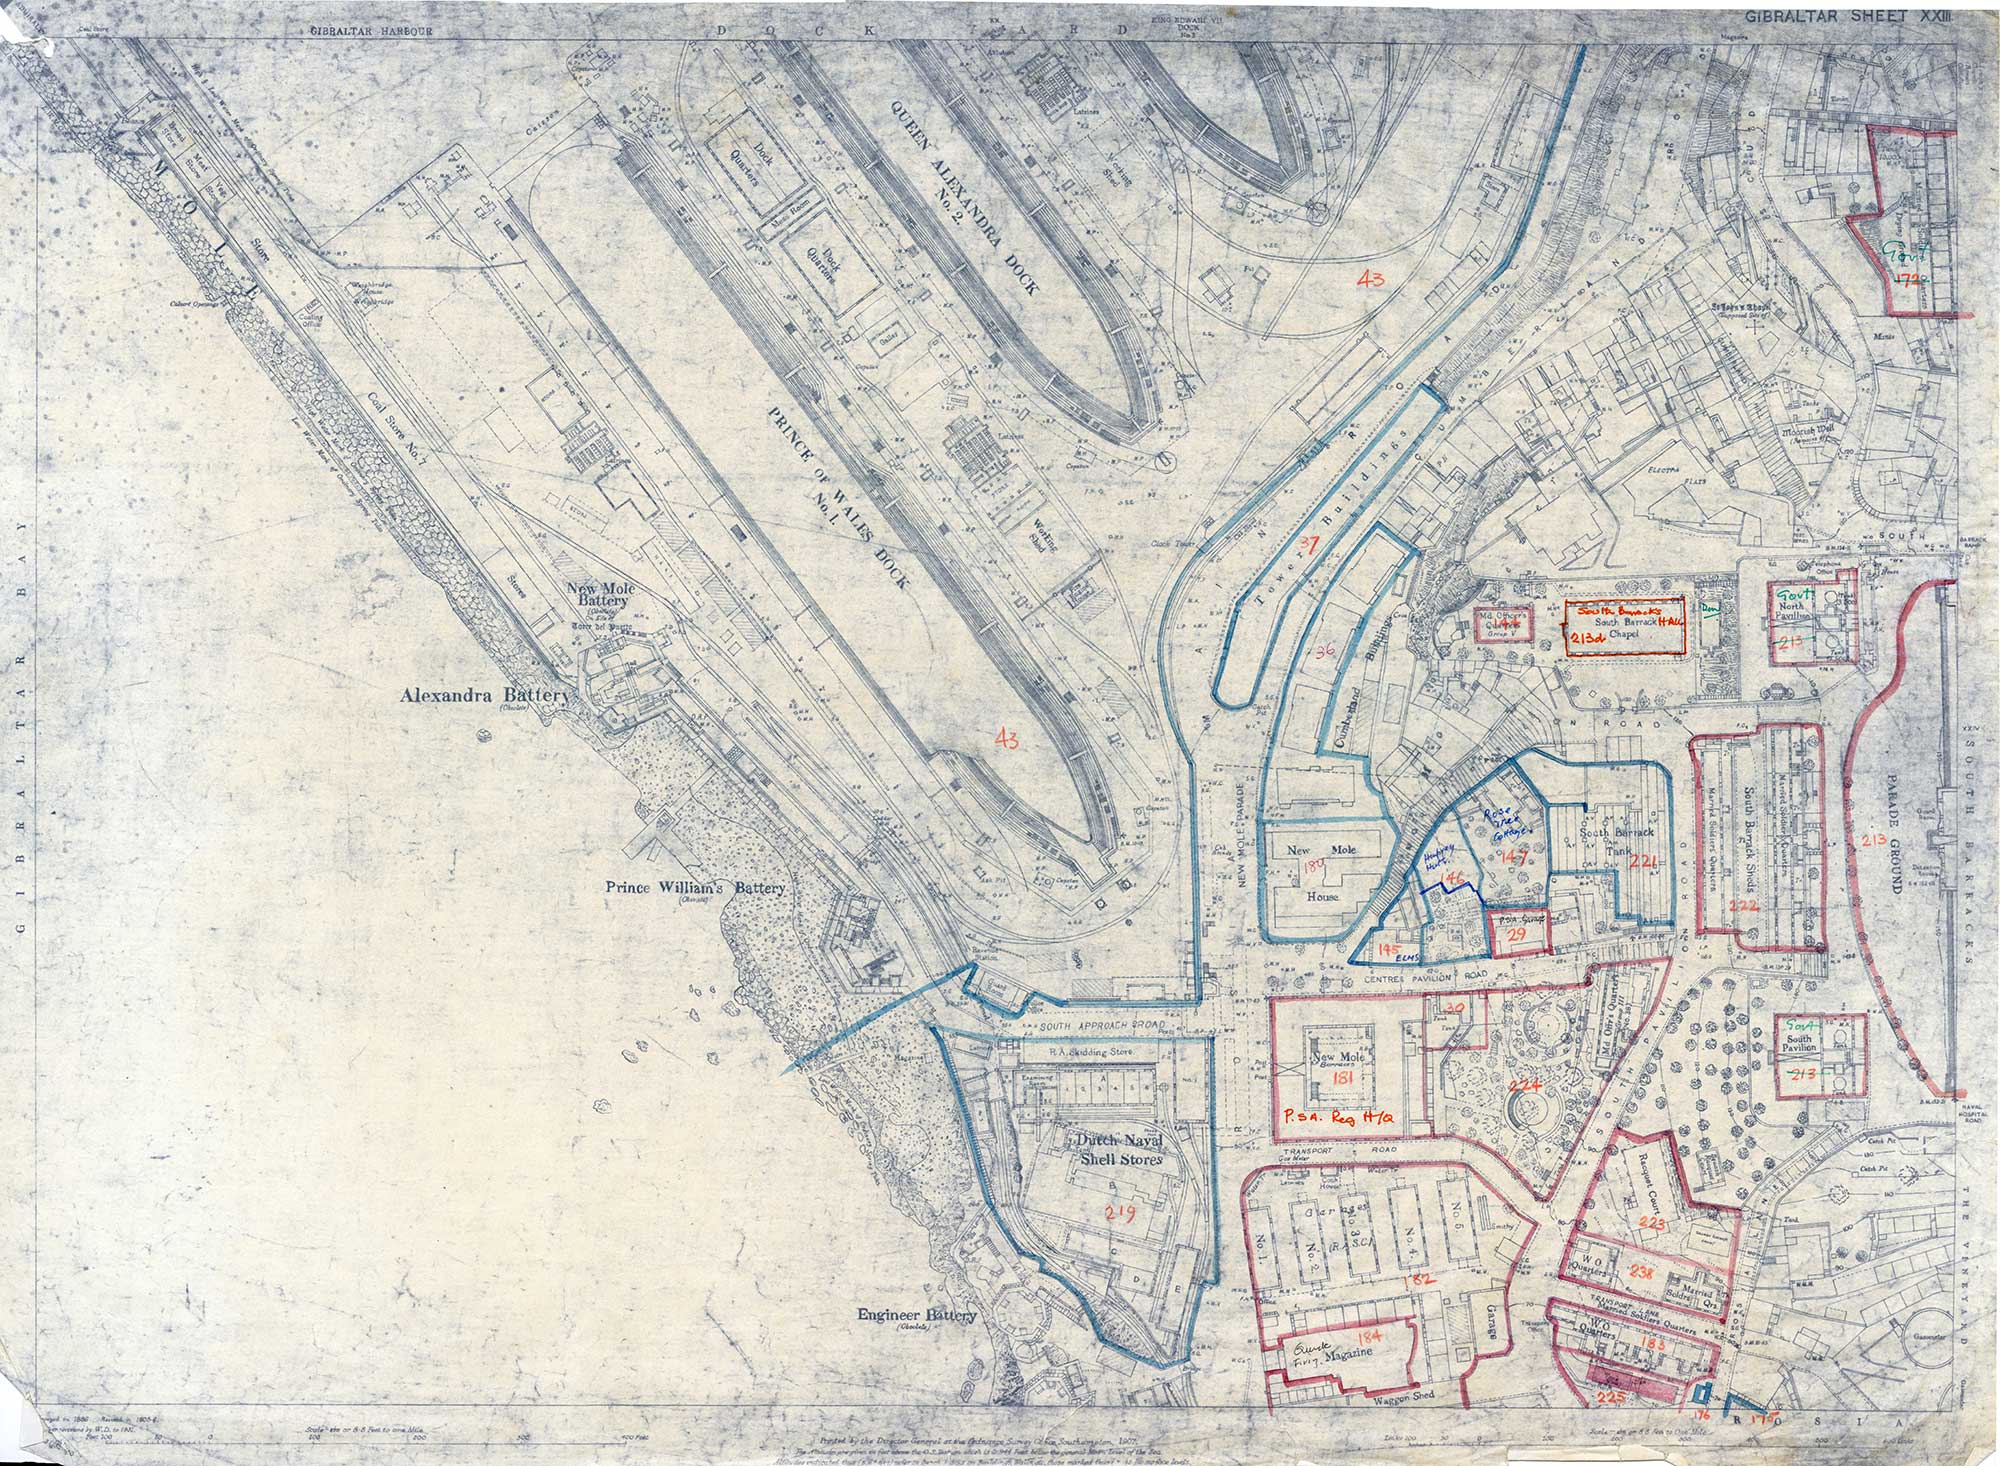 Map-27-OS-Sheet-23-Dry-docks-New-Mole-Police-Stations-South-